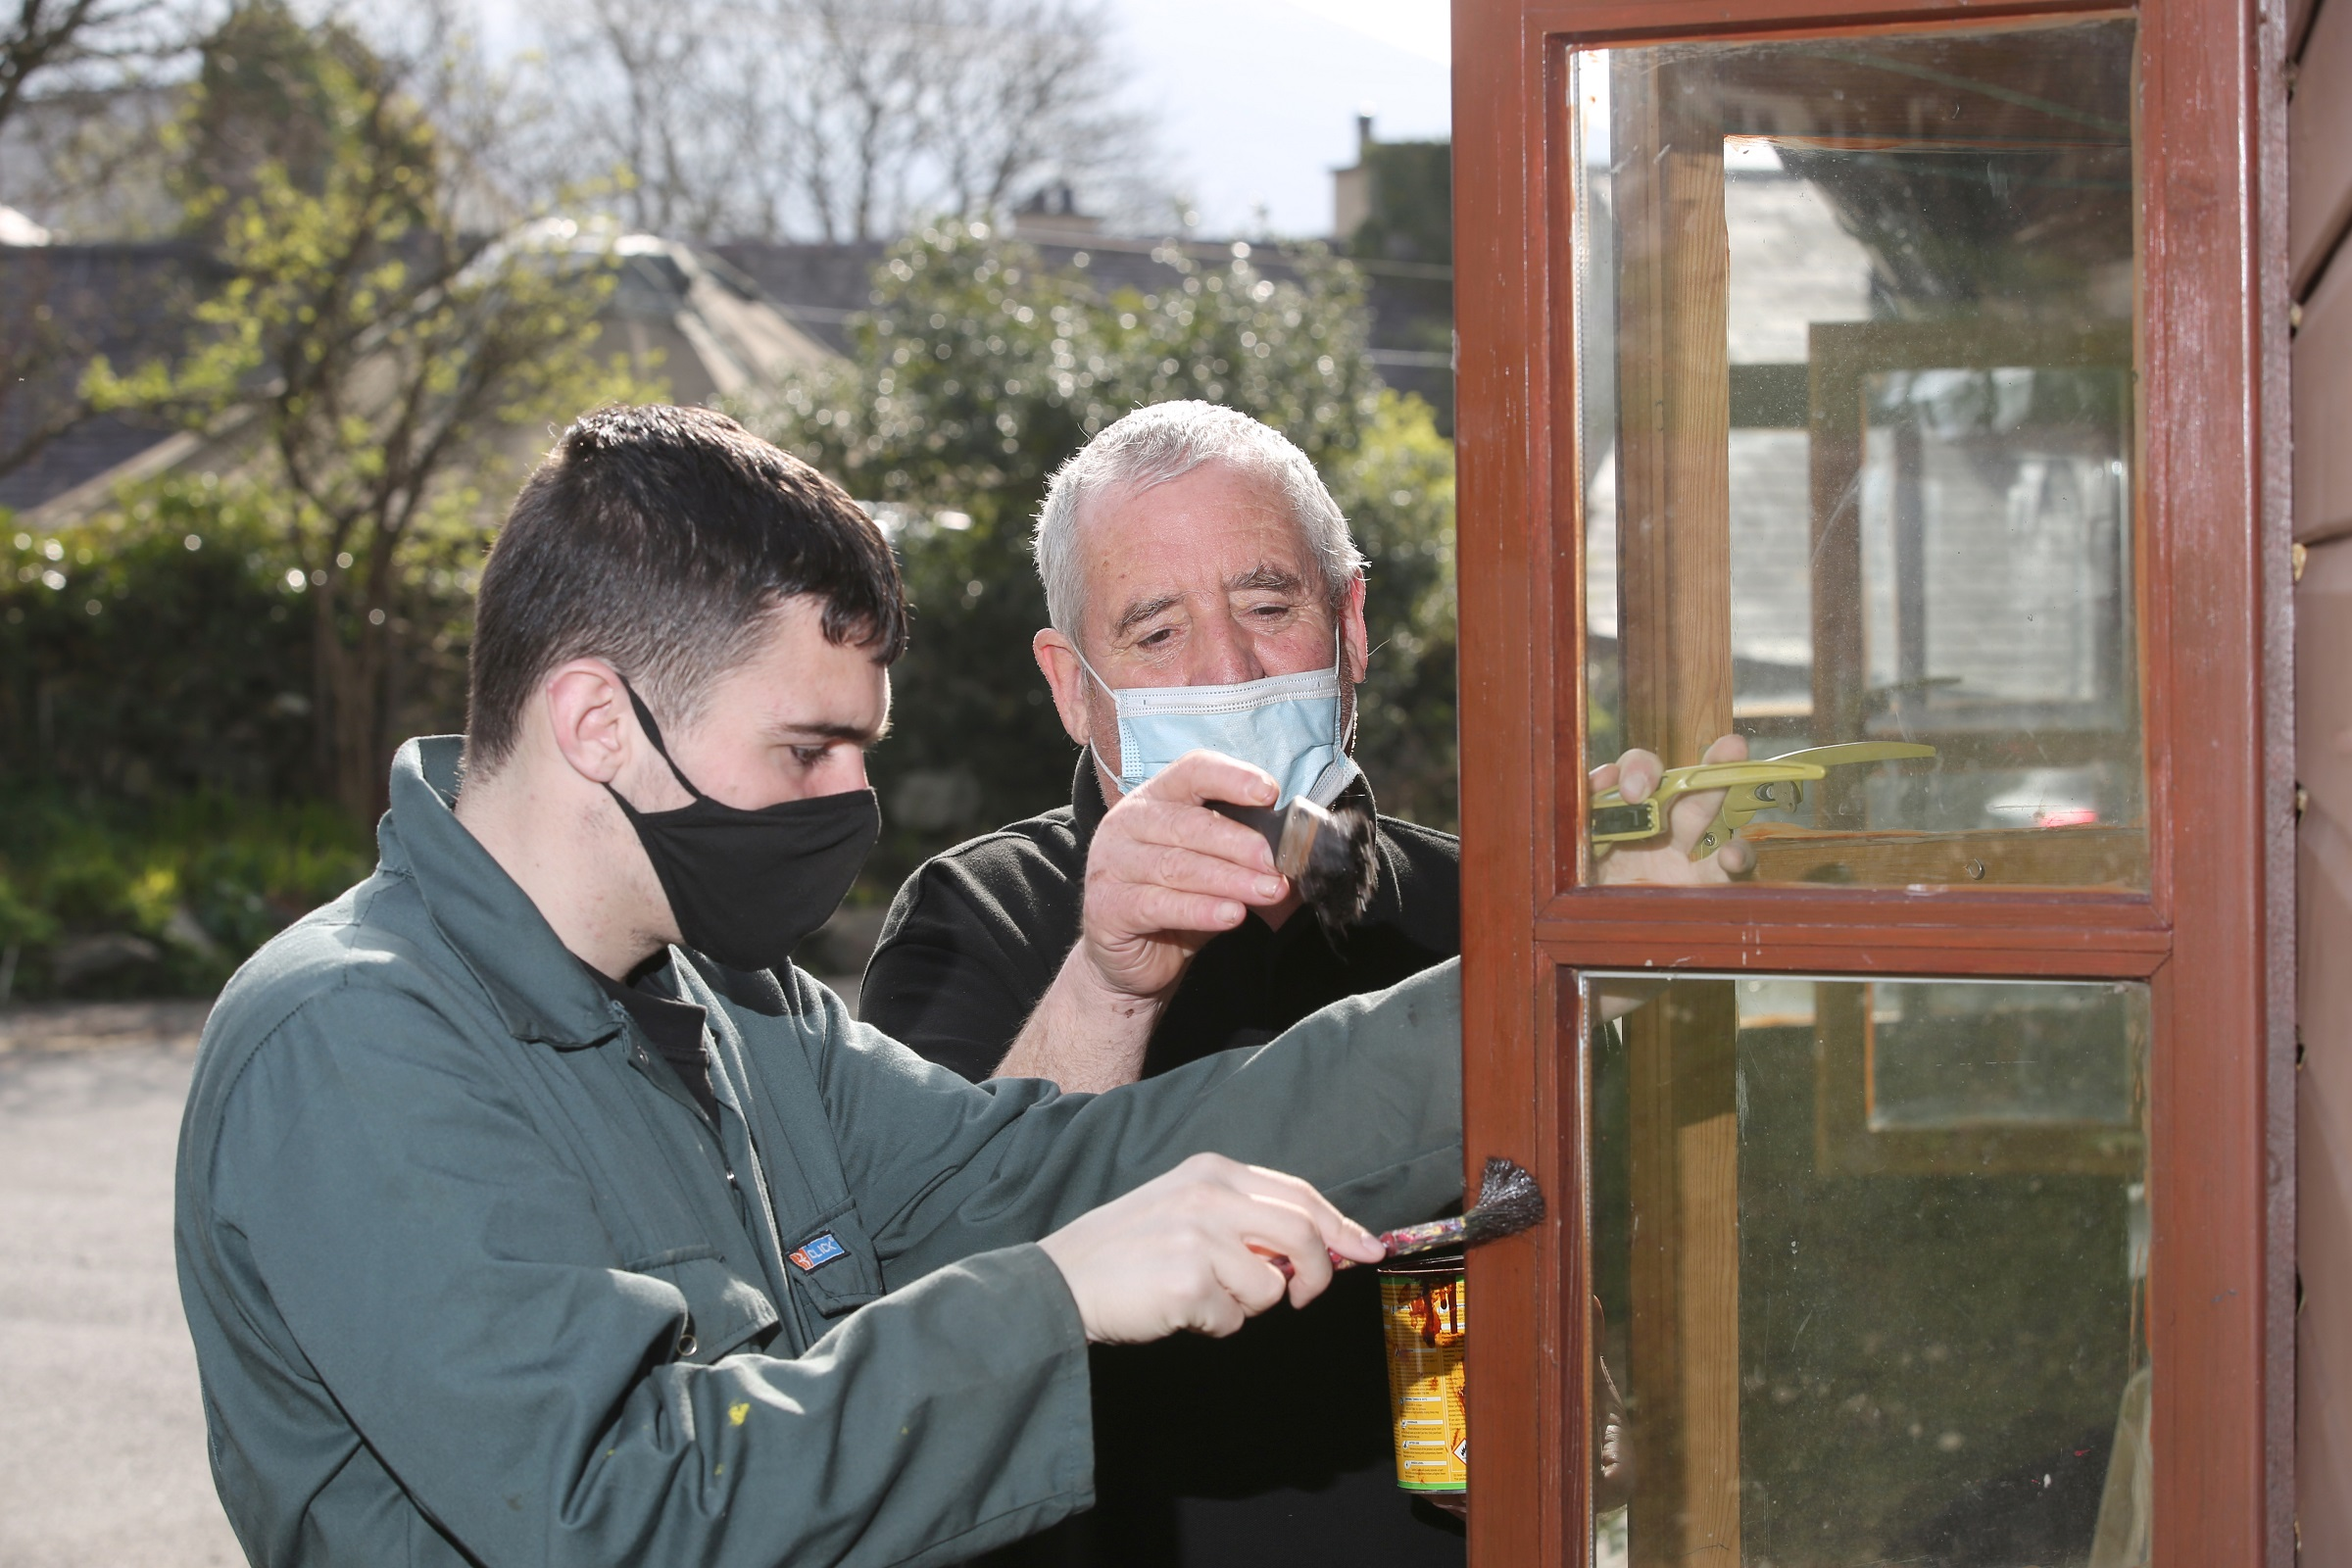 Painting windows at Antur Waunfawr who received funding to invest in their centre through our Social Business Growth Fund (SBGF). SBGF is part funded by the European Regional Development Fund